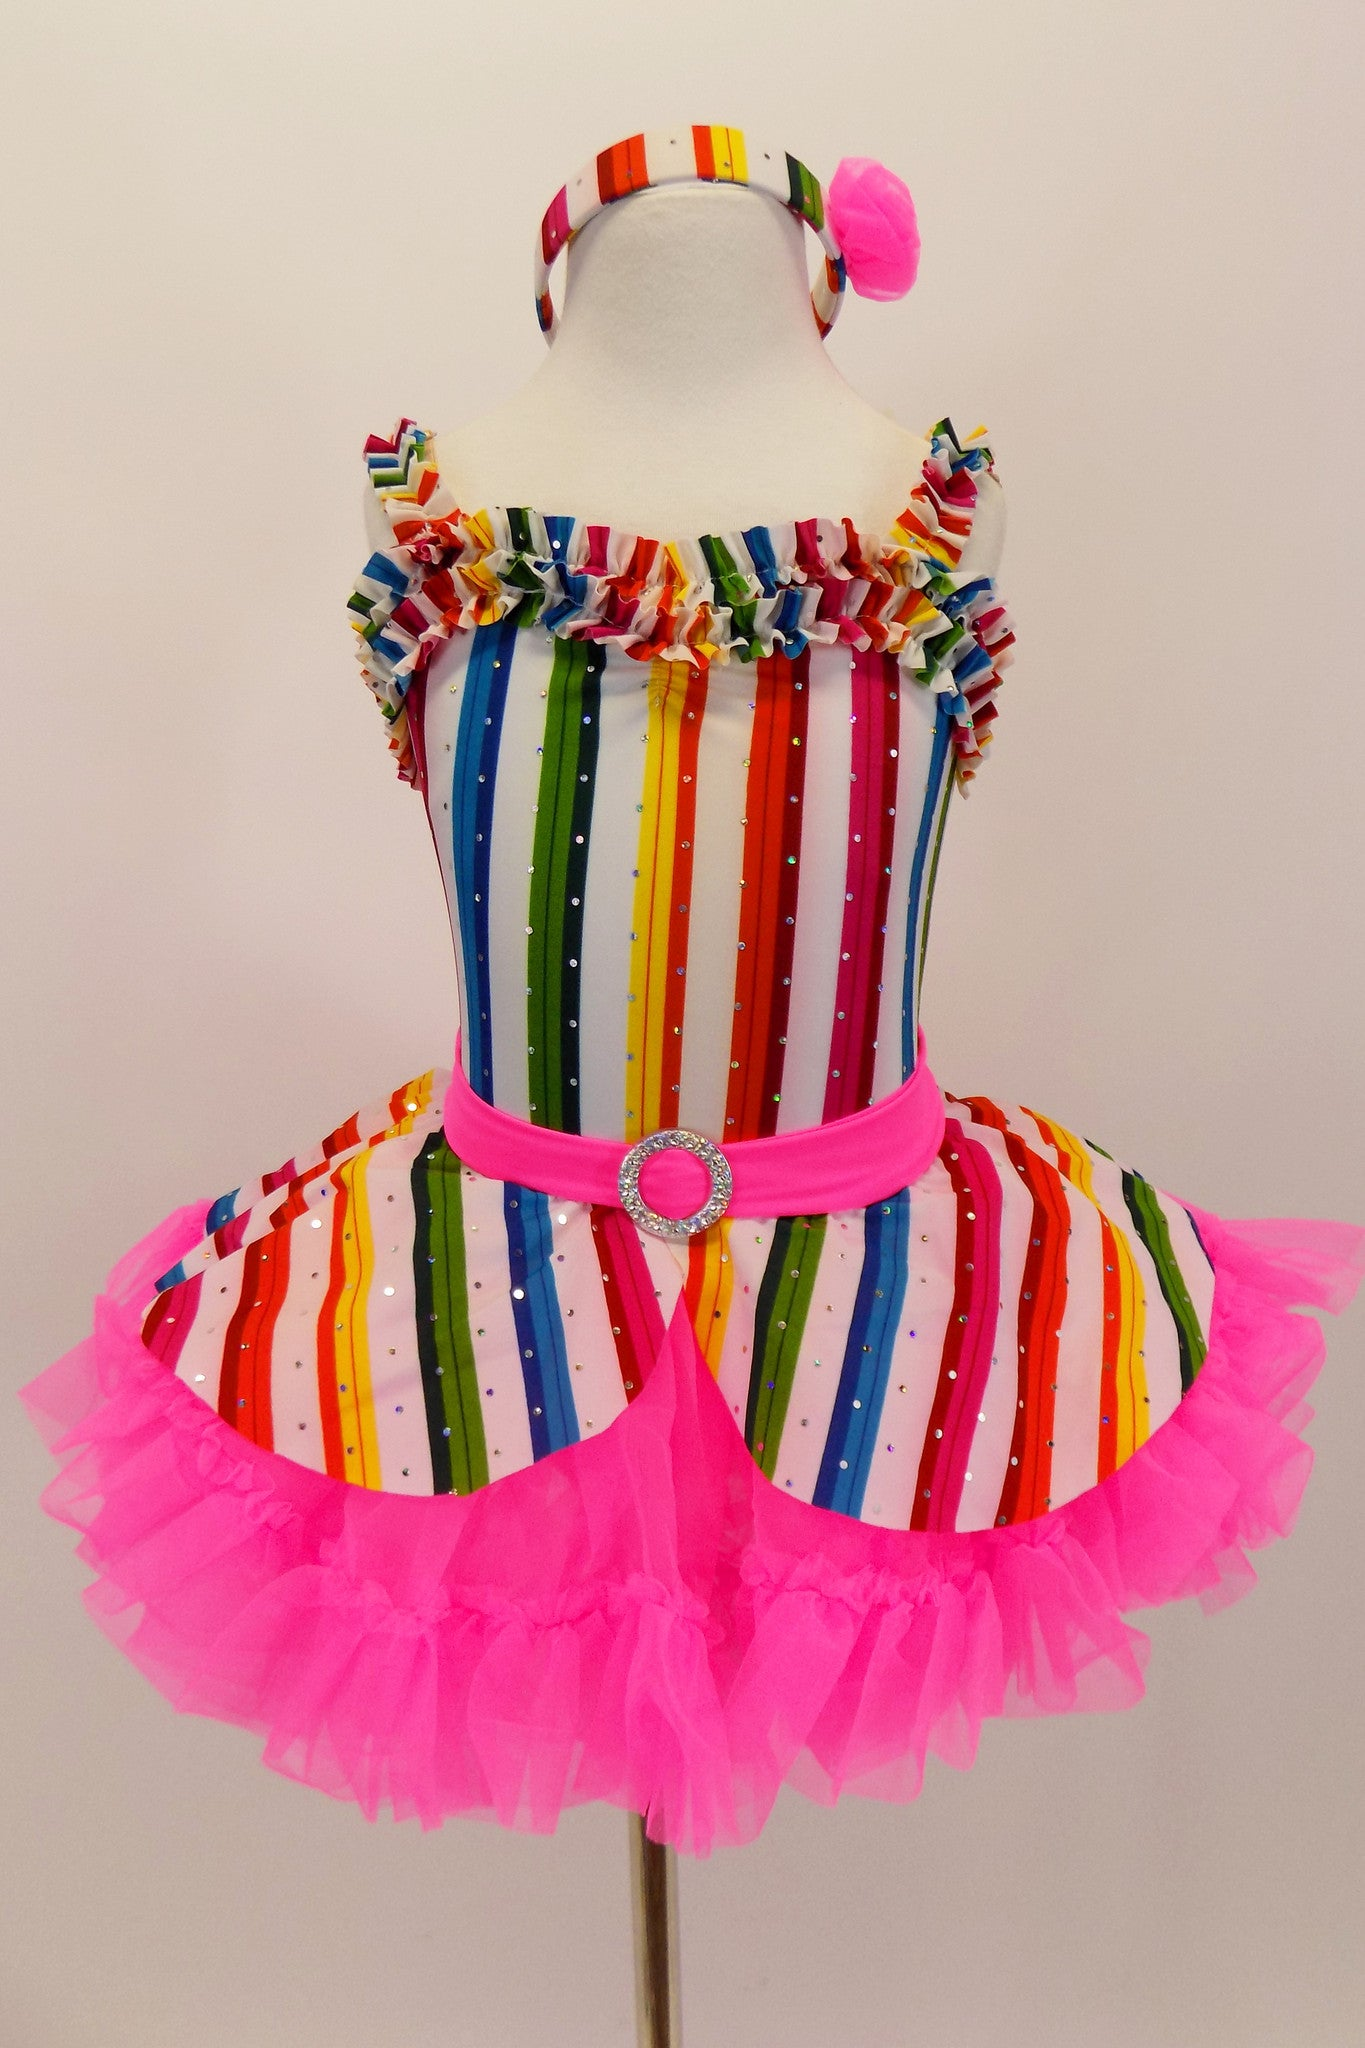 White leotard dress has sequins,colorful  stripes &ruffled bodice.. Skirt sits over bright pink ruffled petticoat. Comes with white gloves, head-band & lollipop. Front